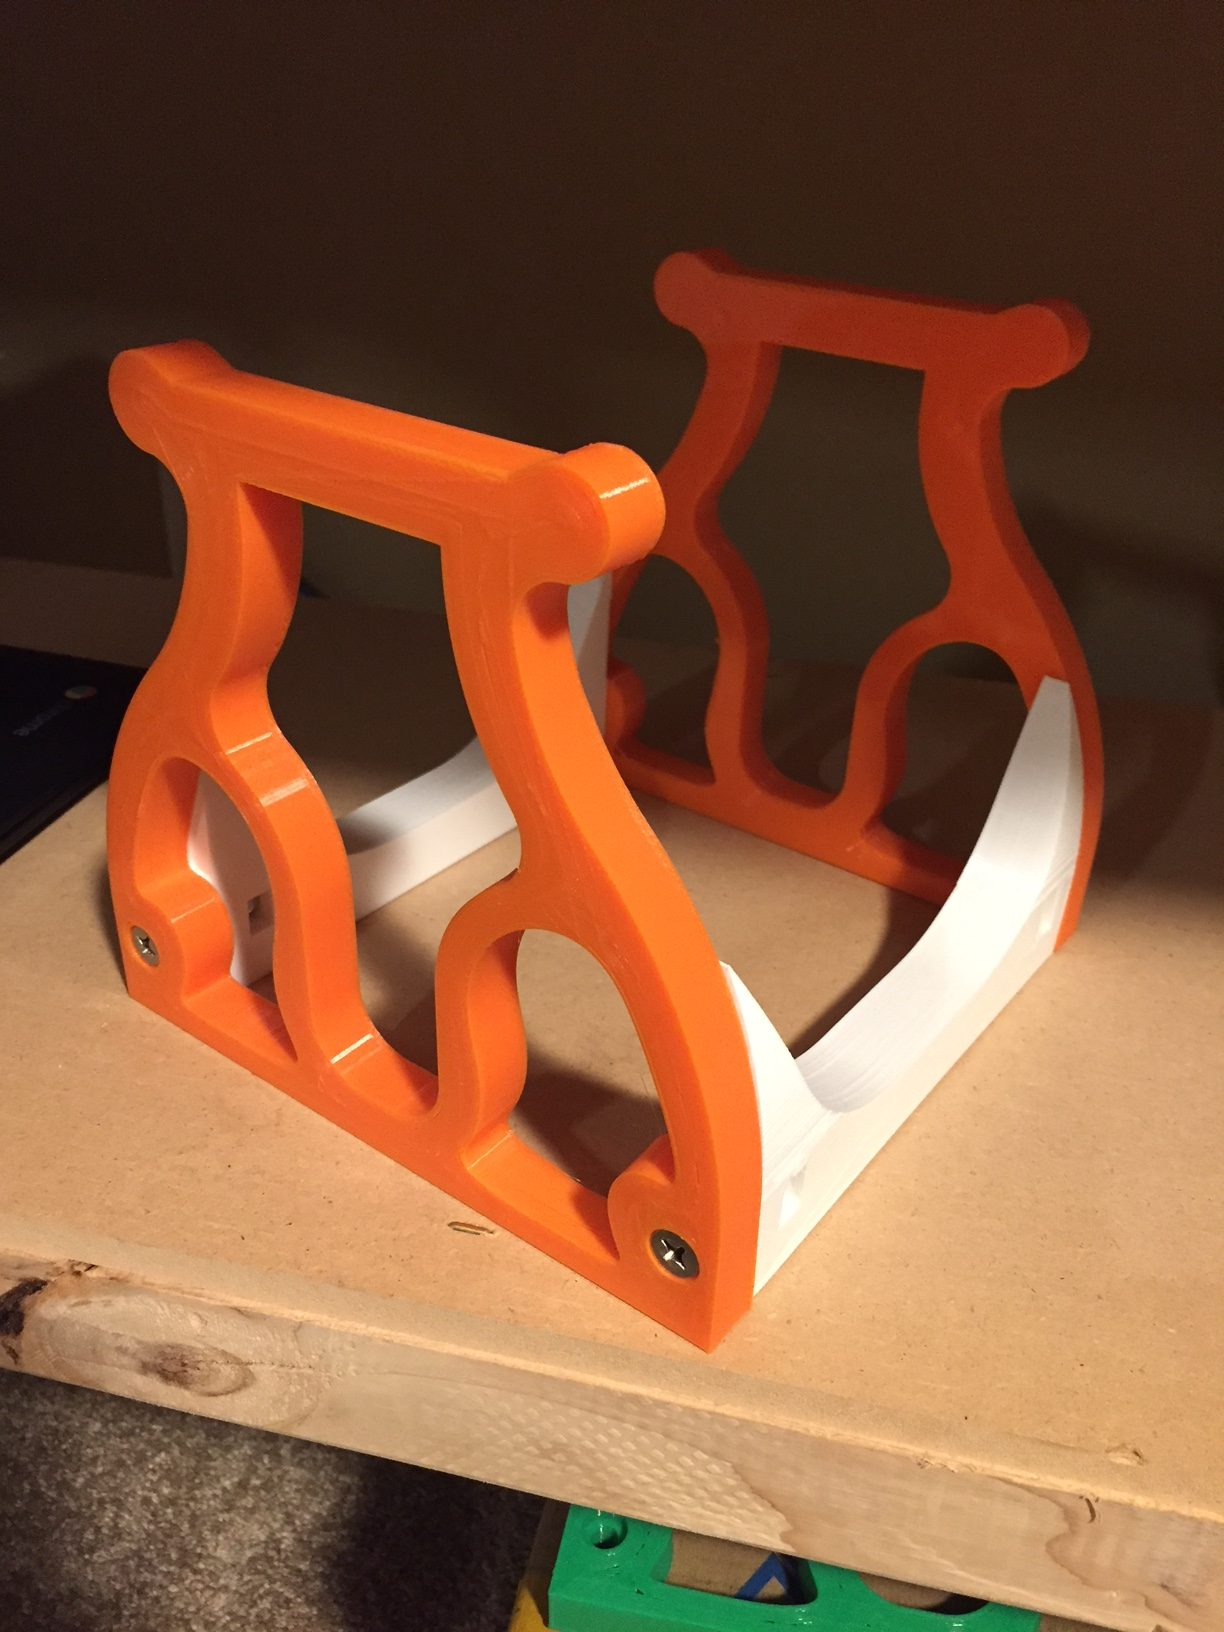 EUC Stand 2.0 Orange/White